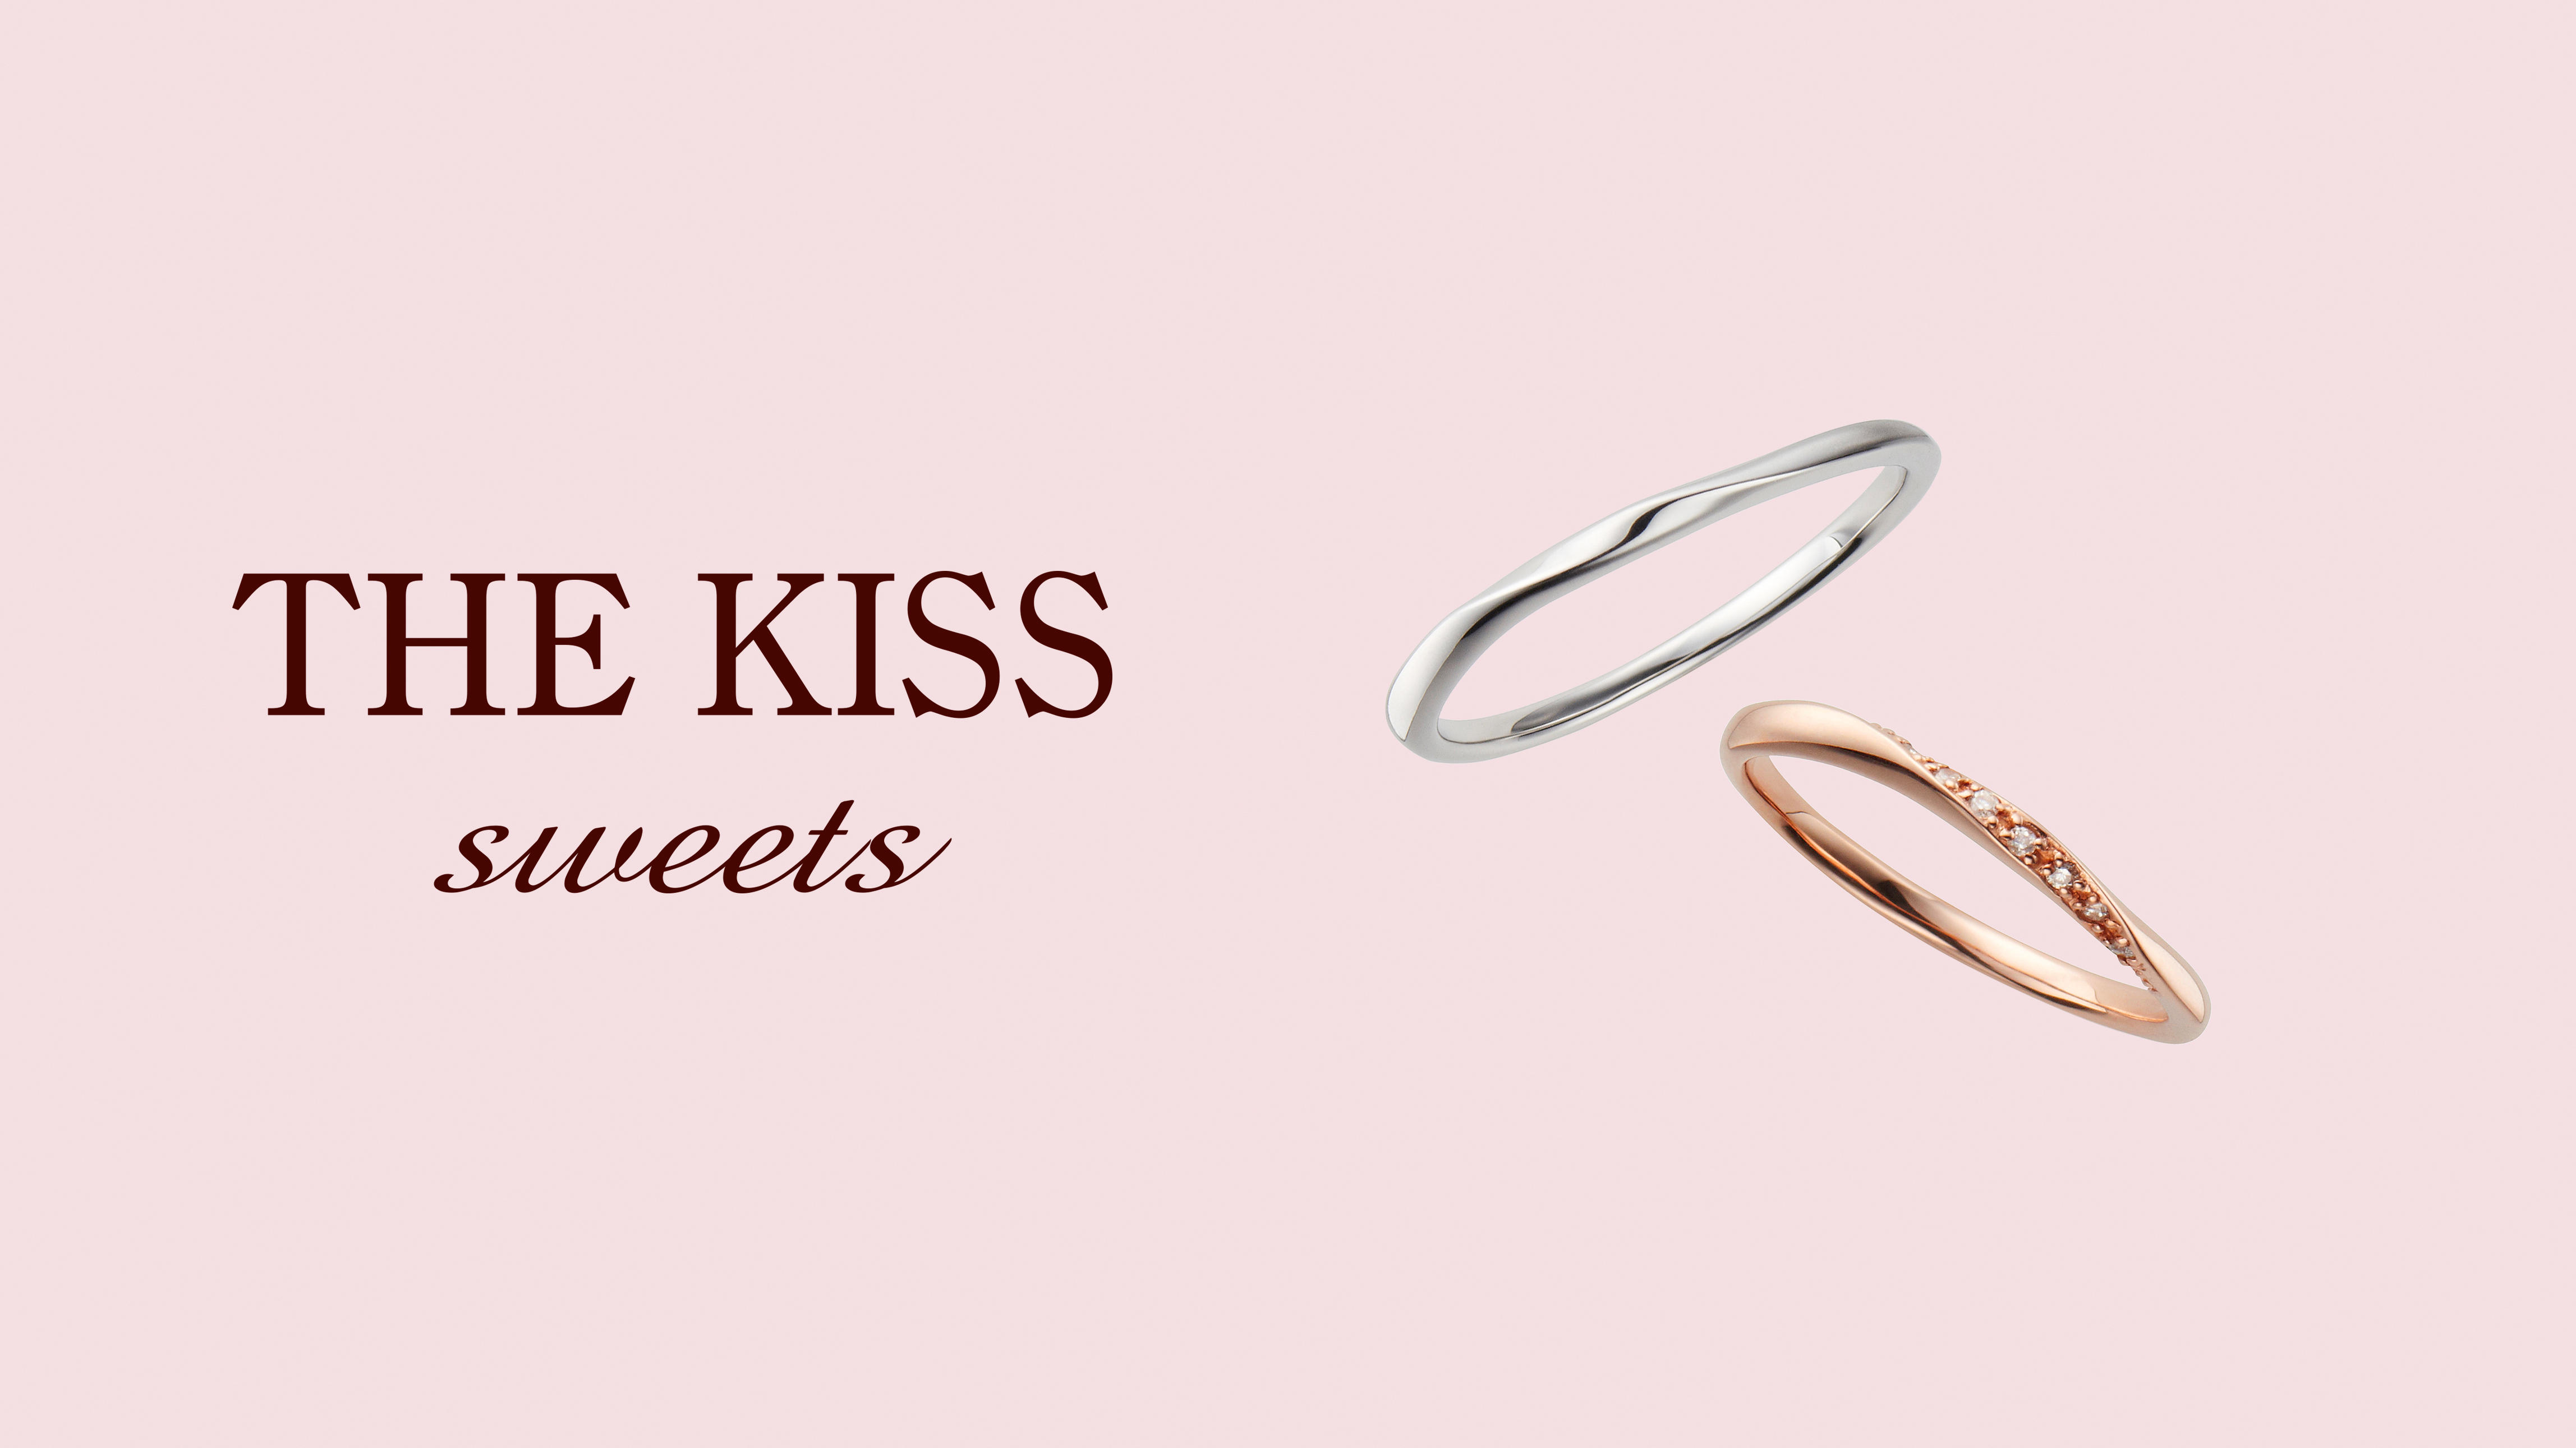 【SHOP NEWS】THE KISS sweets K10ペアリング10%OFFキャンペーン開催のお知らせ